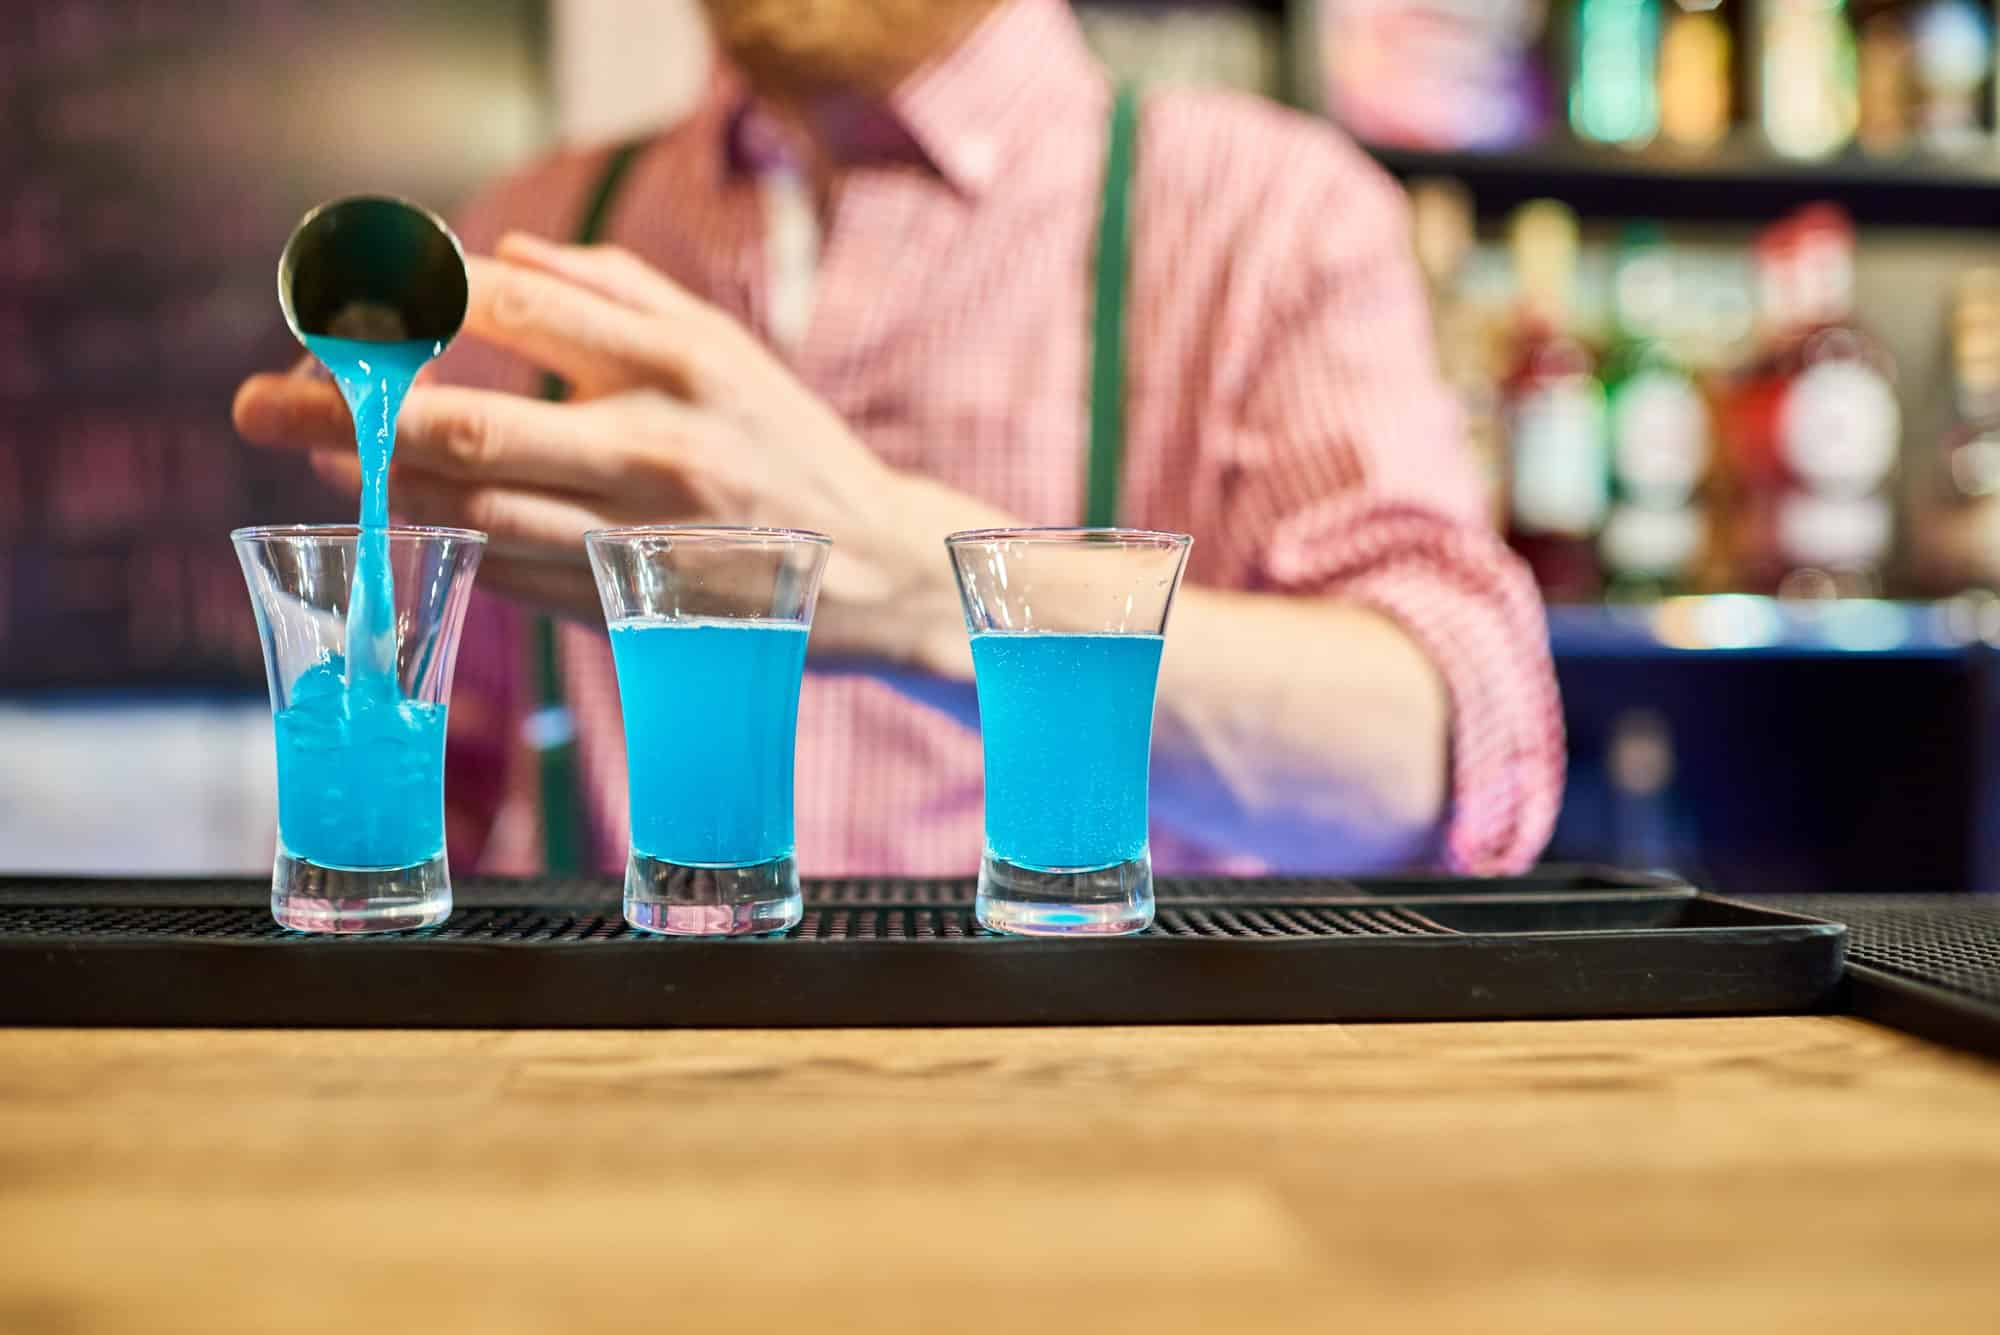 Bartender Pouring Vodka Shots at Bar Counter